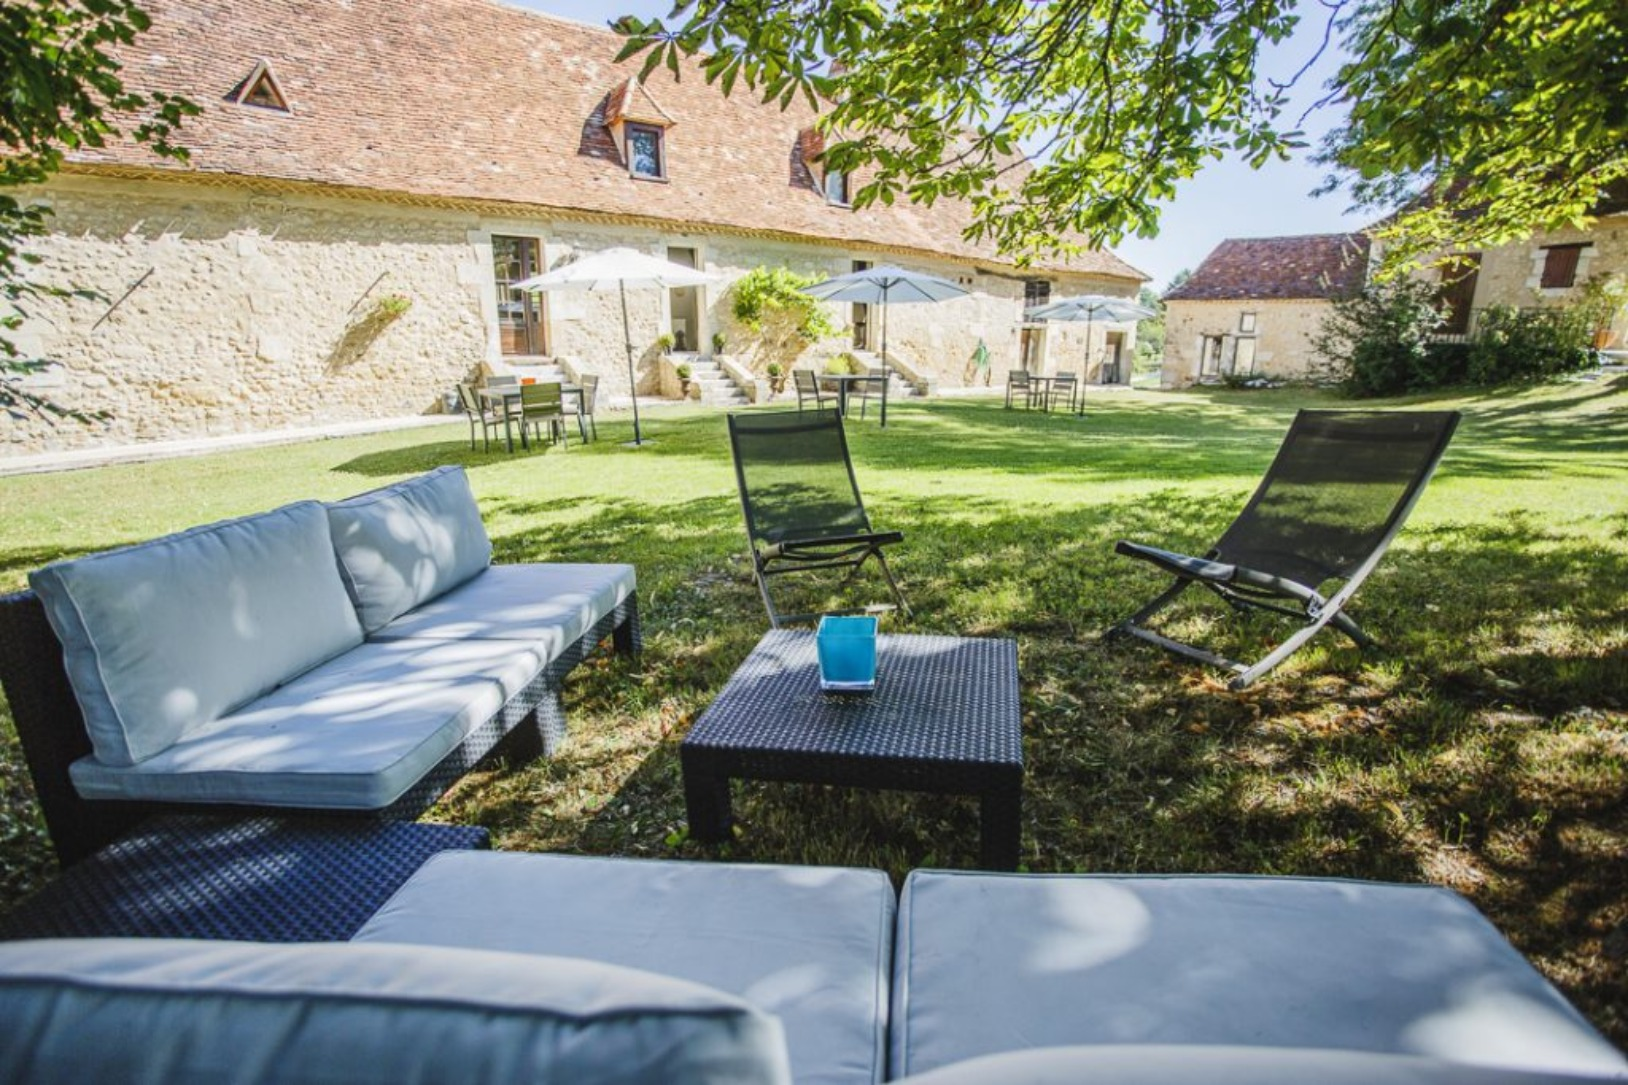 A couple of lawn chairs sitting on top of a picnic table at Clos des Pélissous.